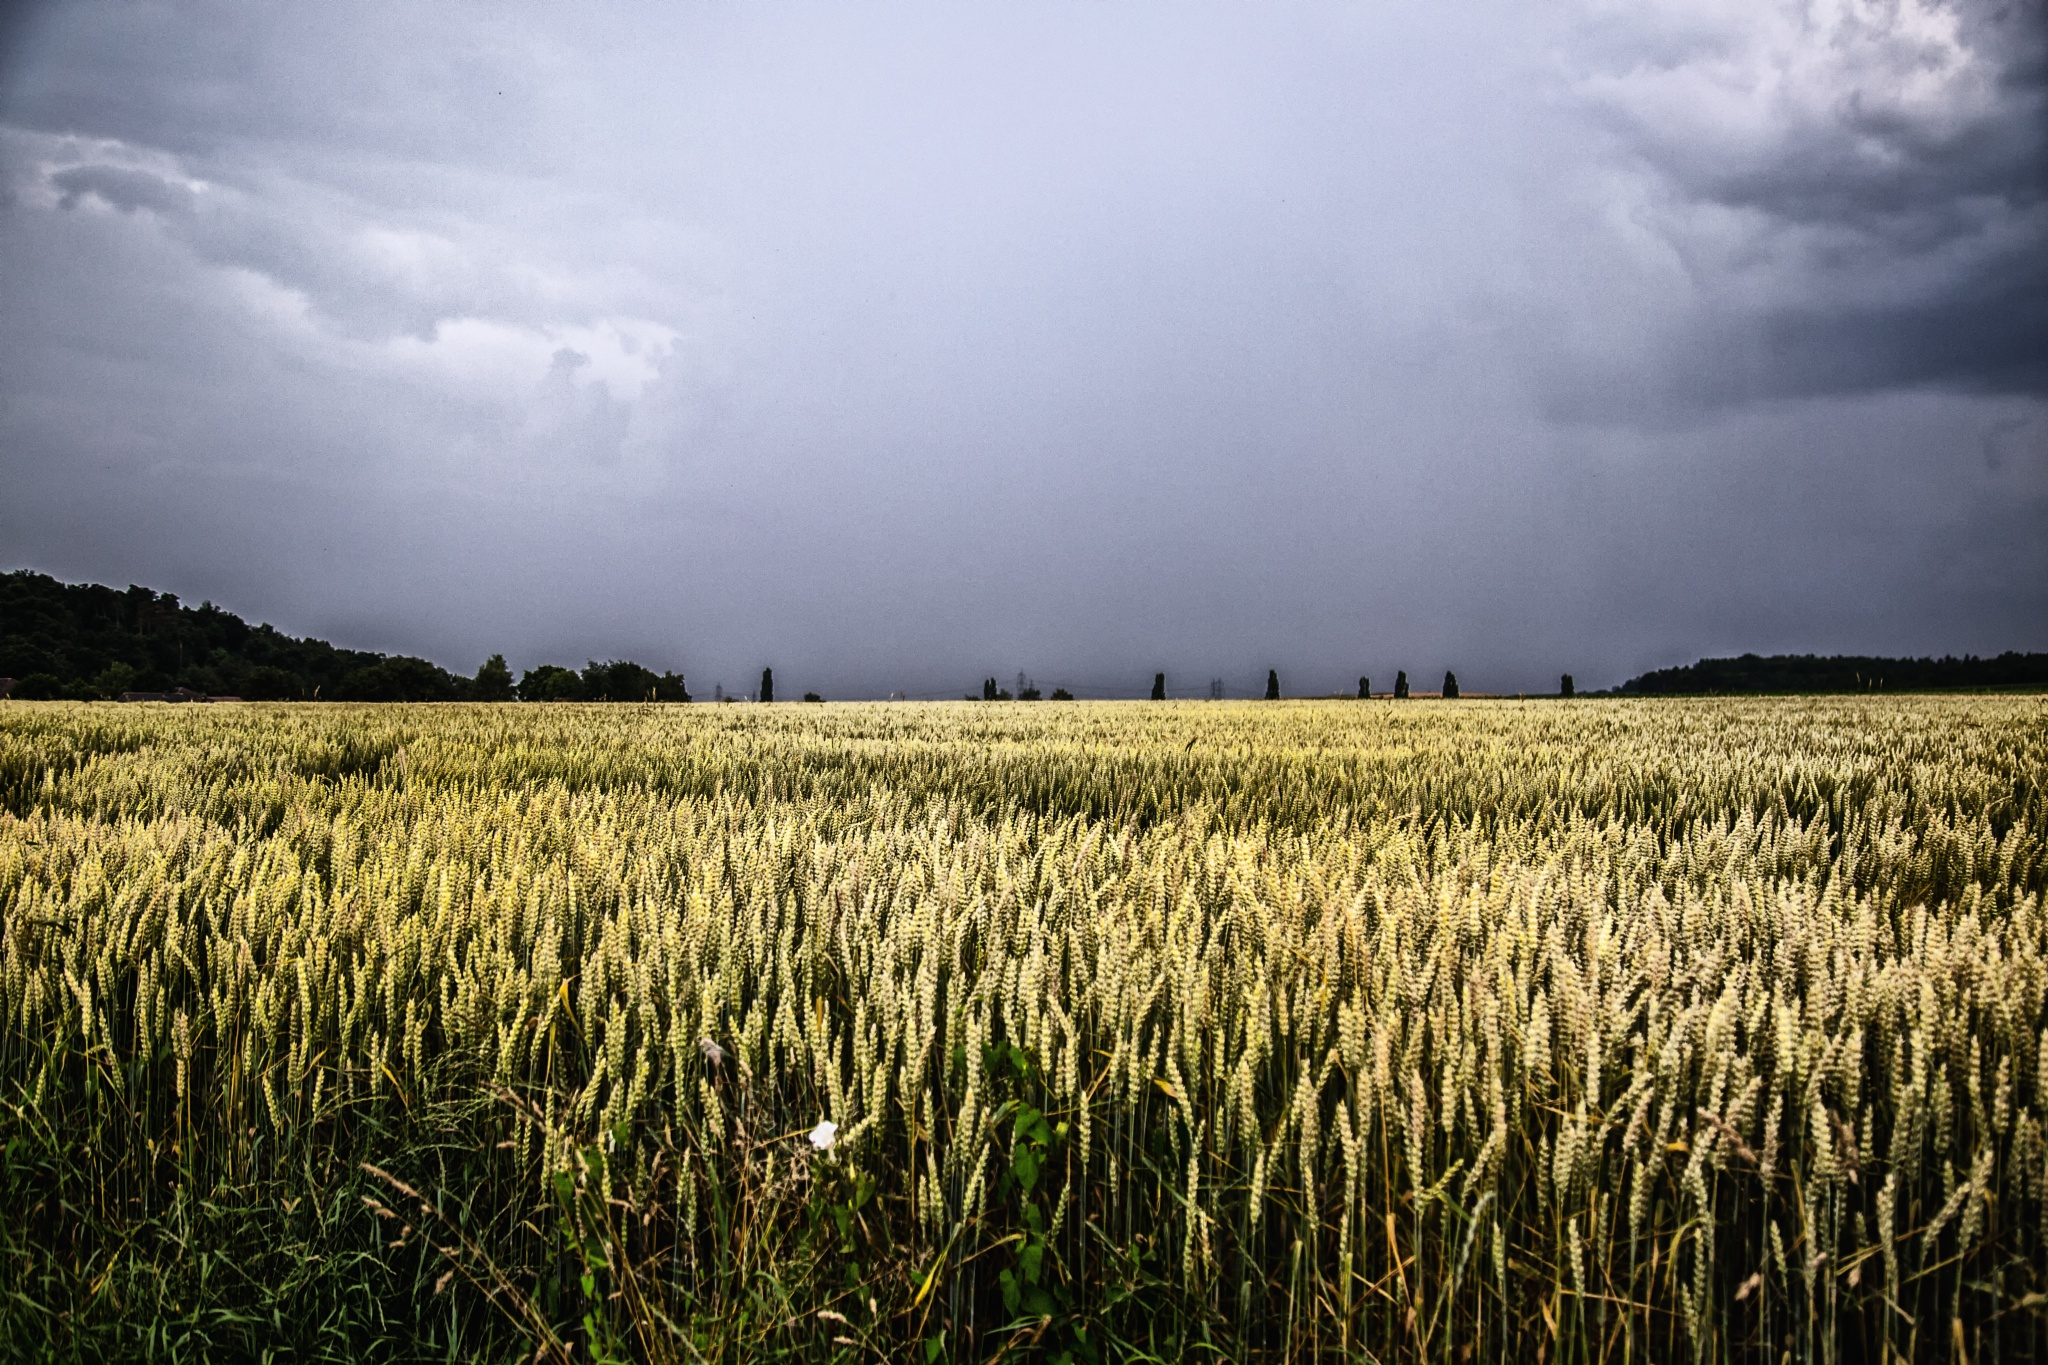 weather by Christoph Reiter